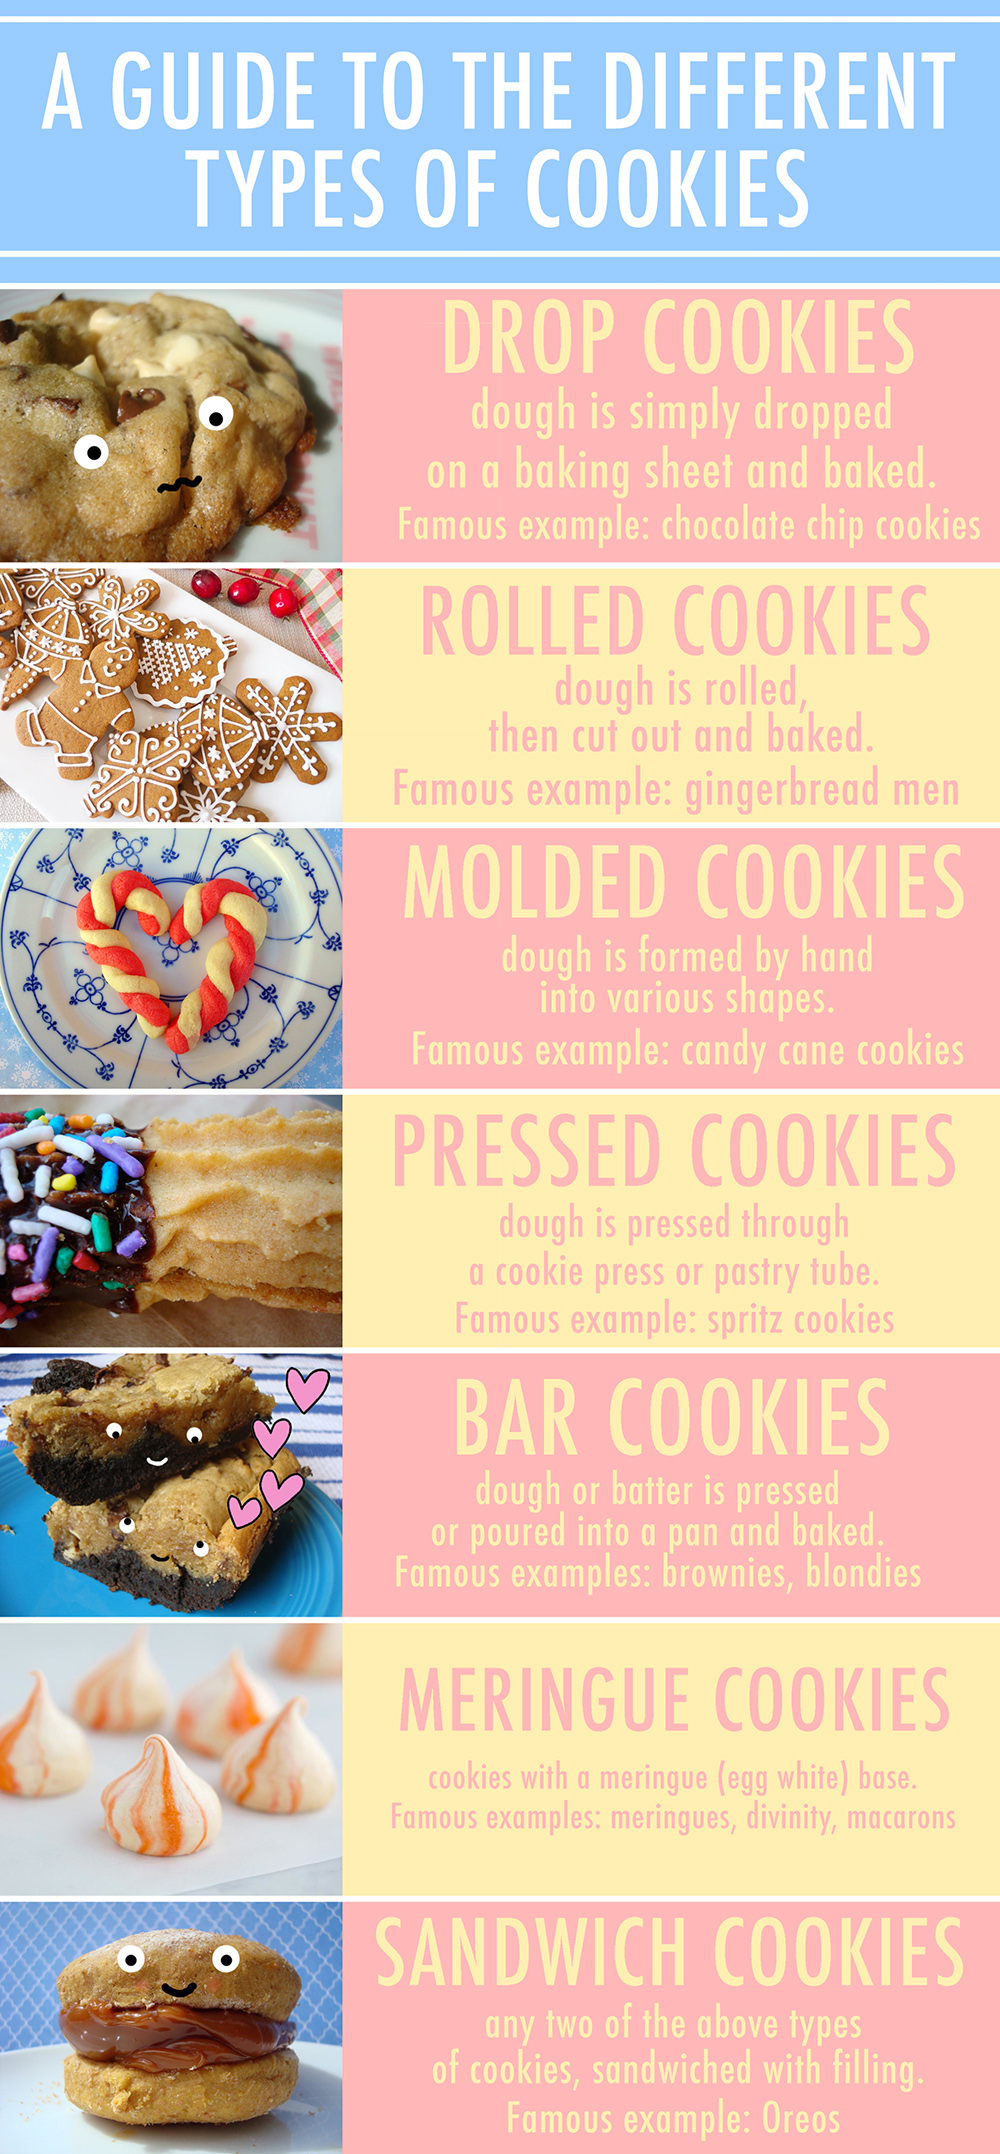 A Visual Guide to the Different Types of Cookies